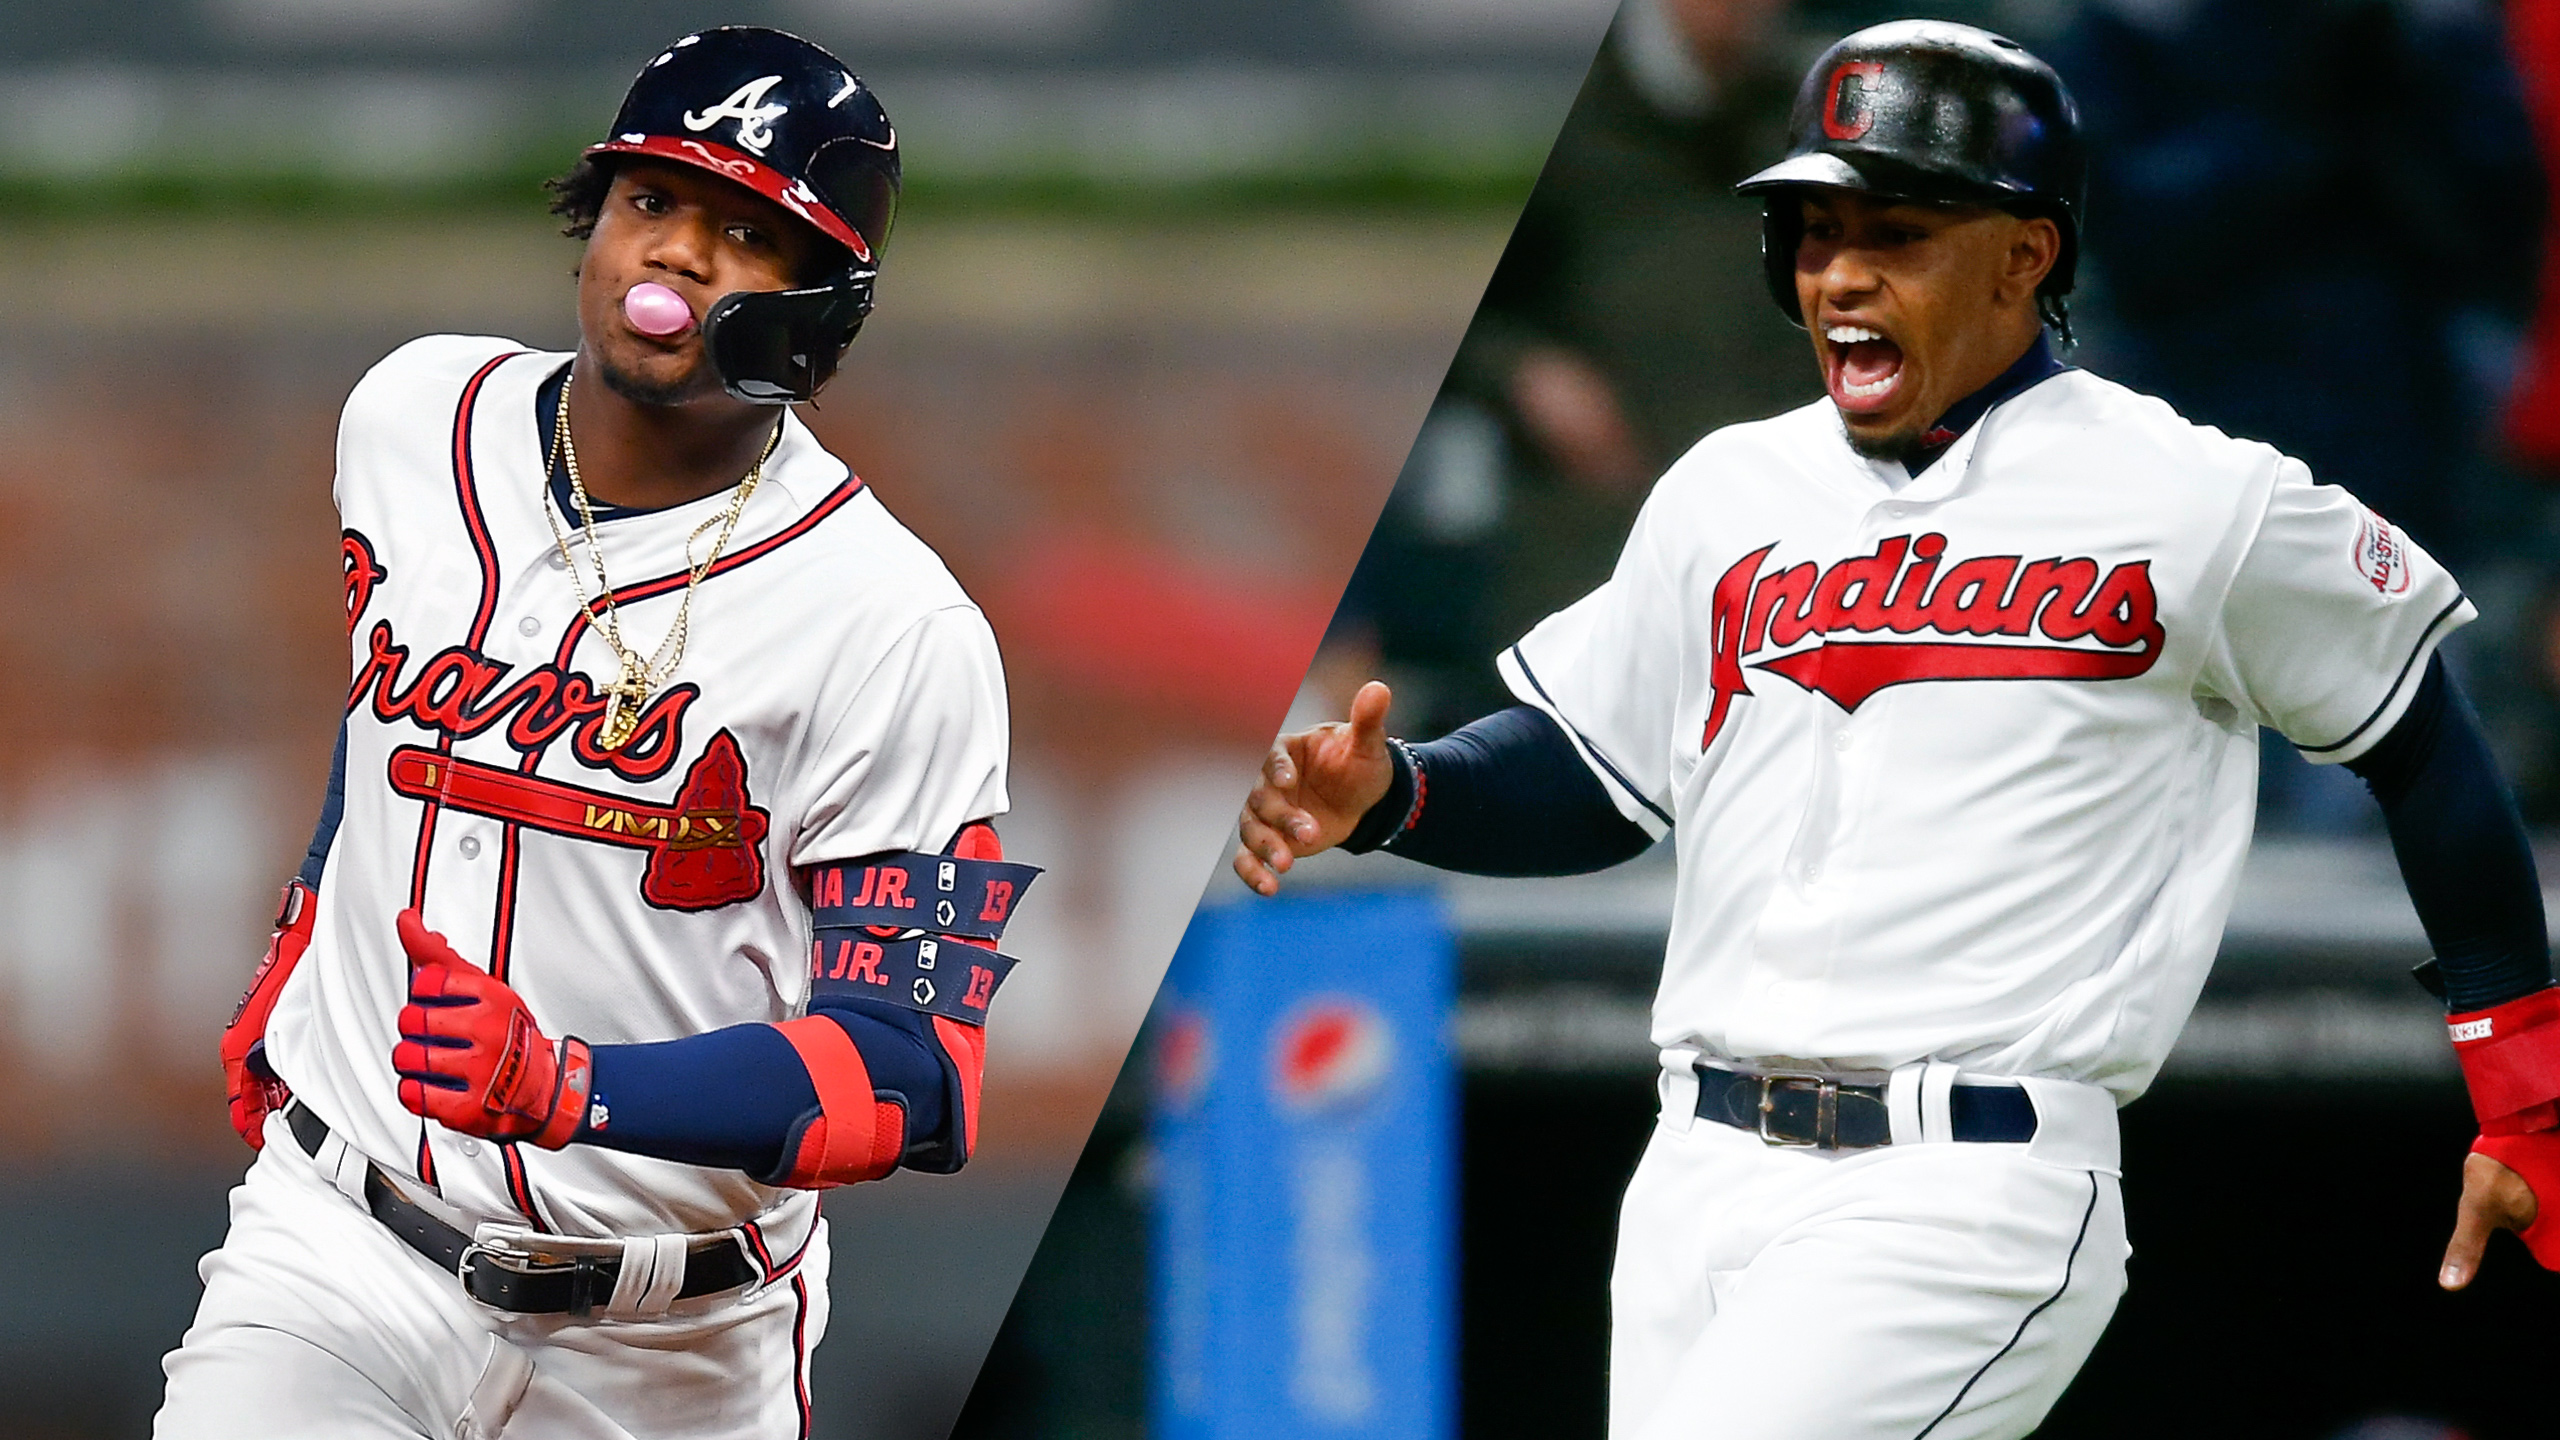 Atlanta Braves vs. Cleveland Indians (re-air)